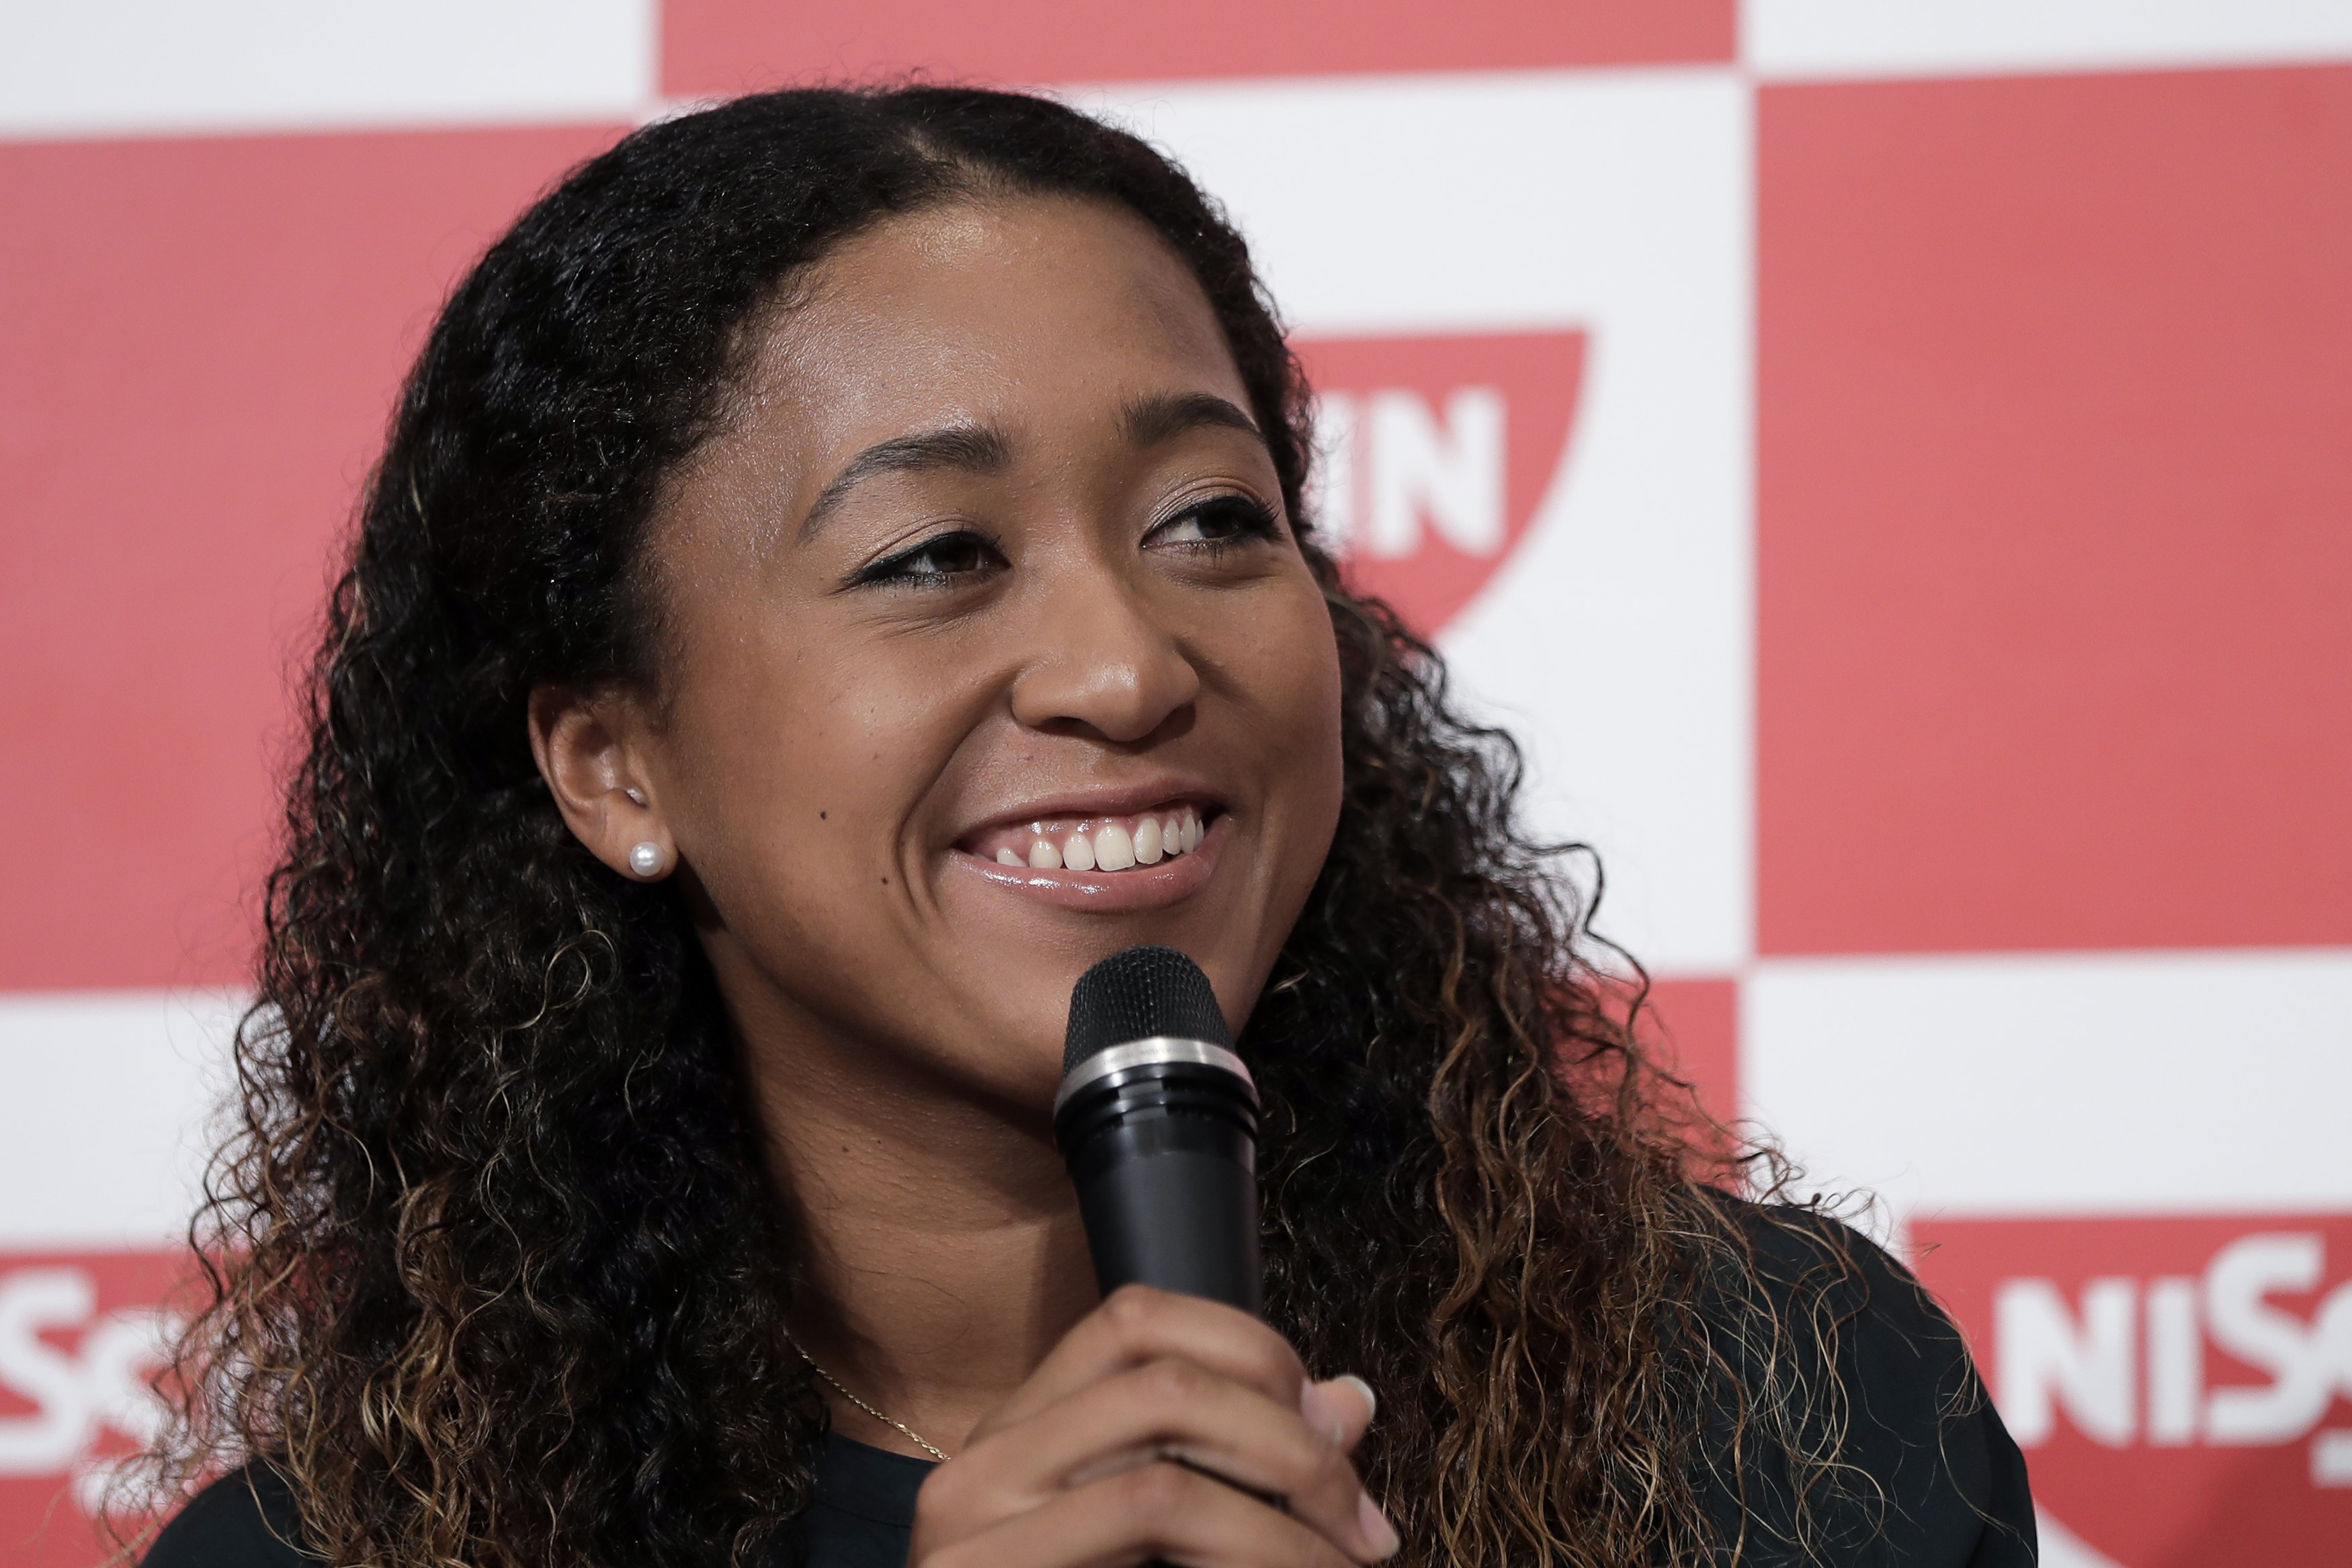 Naomi Osaka during a press conference in Japan in 2018. | Photo: Getty Images